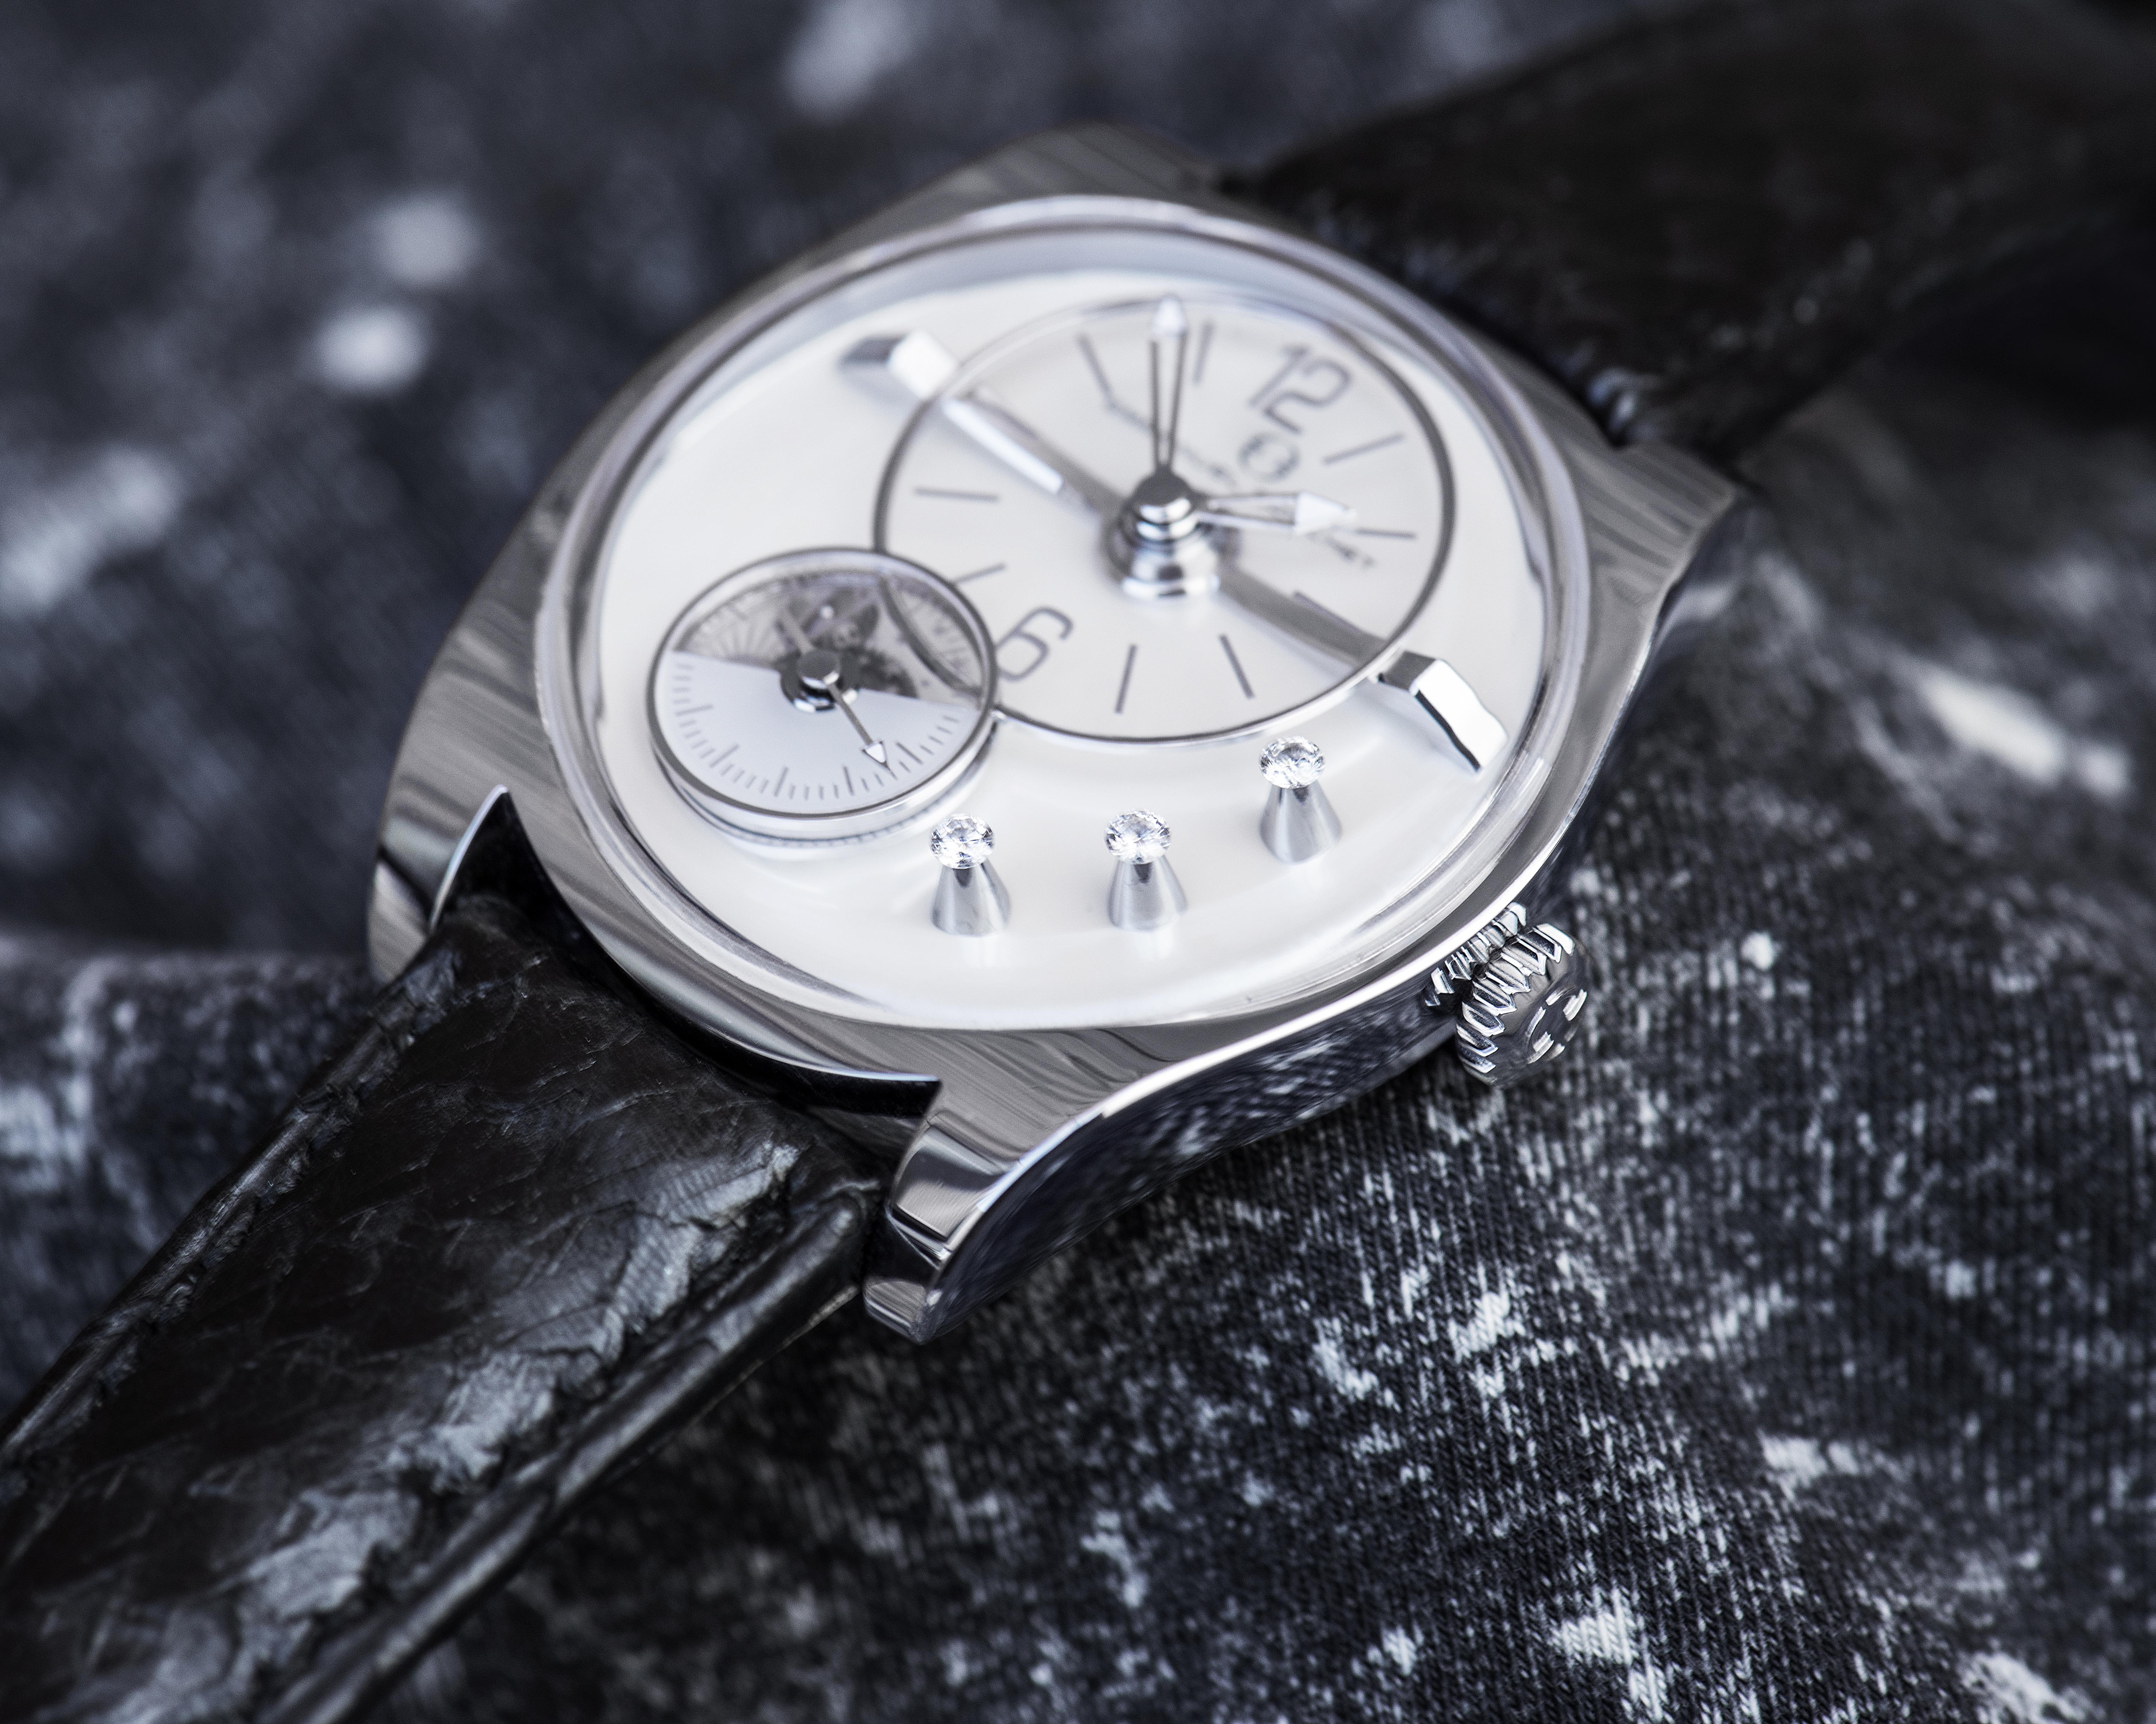 The Emmanuel Bouchet EB02 Automatic Limited Edition with diamonds -- in a conical setting -- is a technical masterpiece.